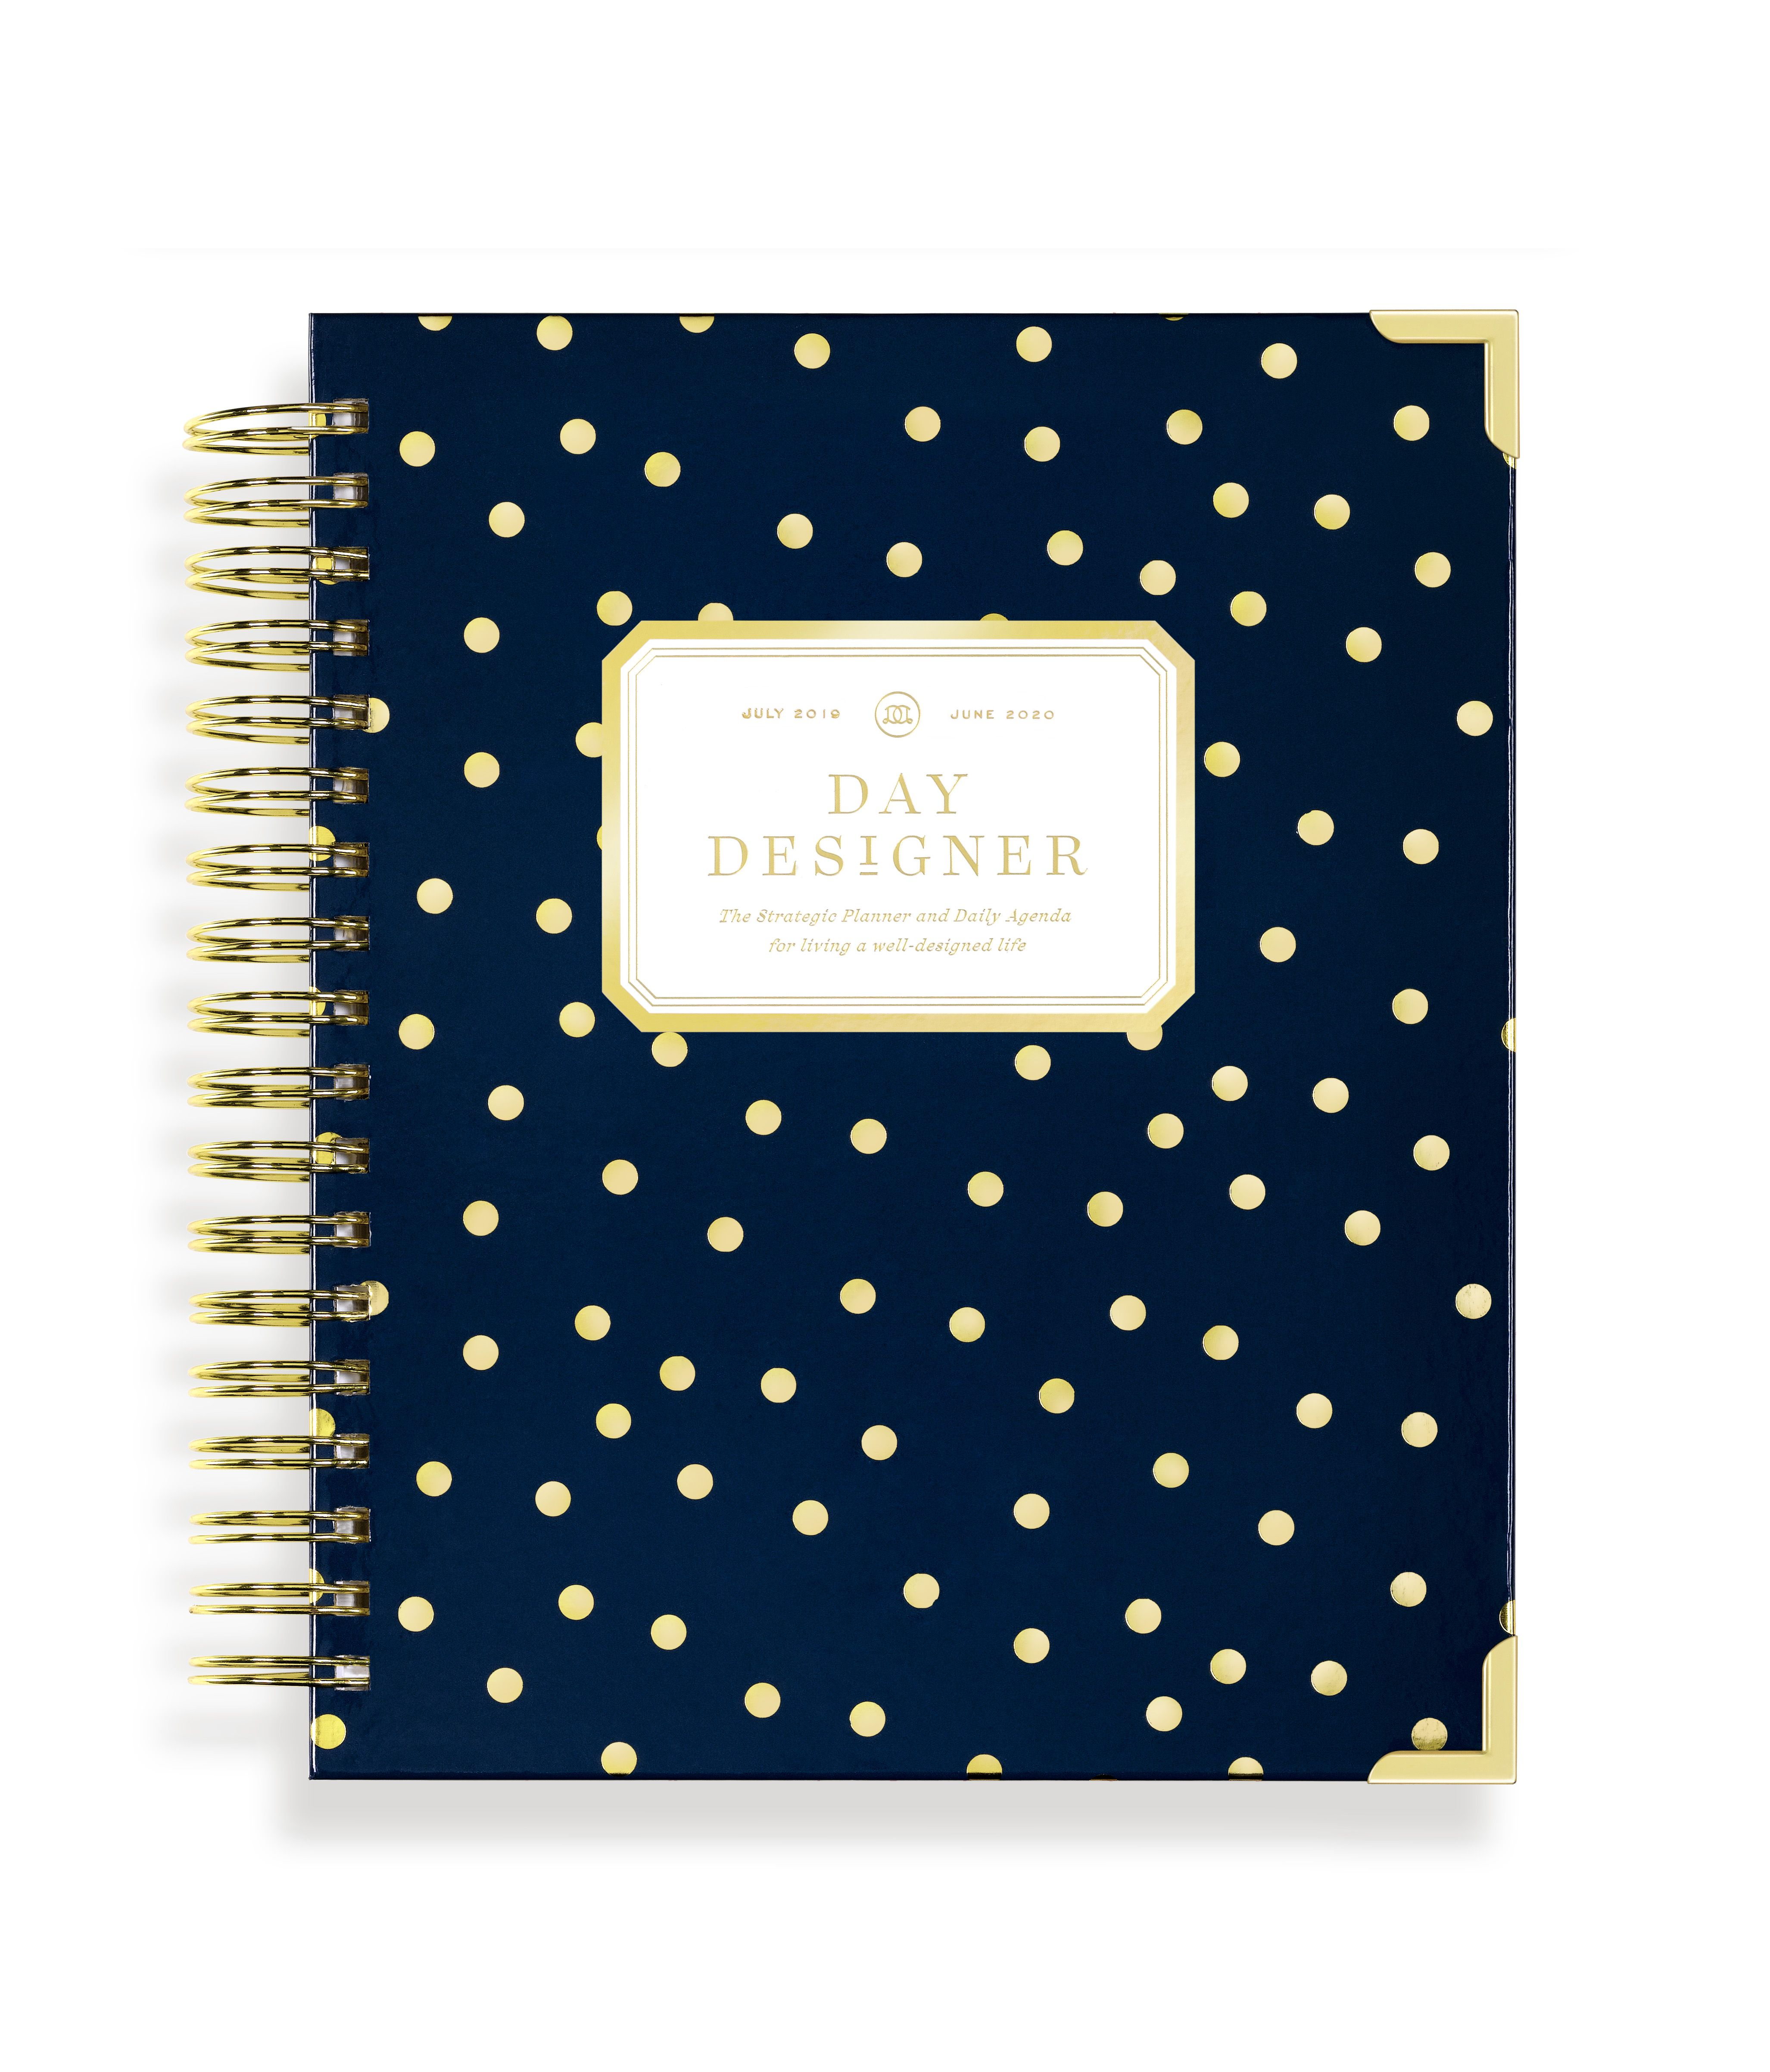 The Best Planner For College Anyone Who Wants To Live An